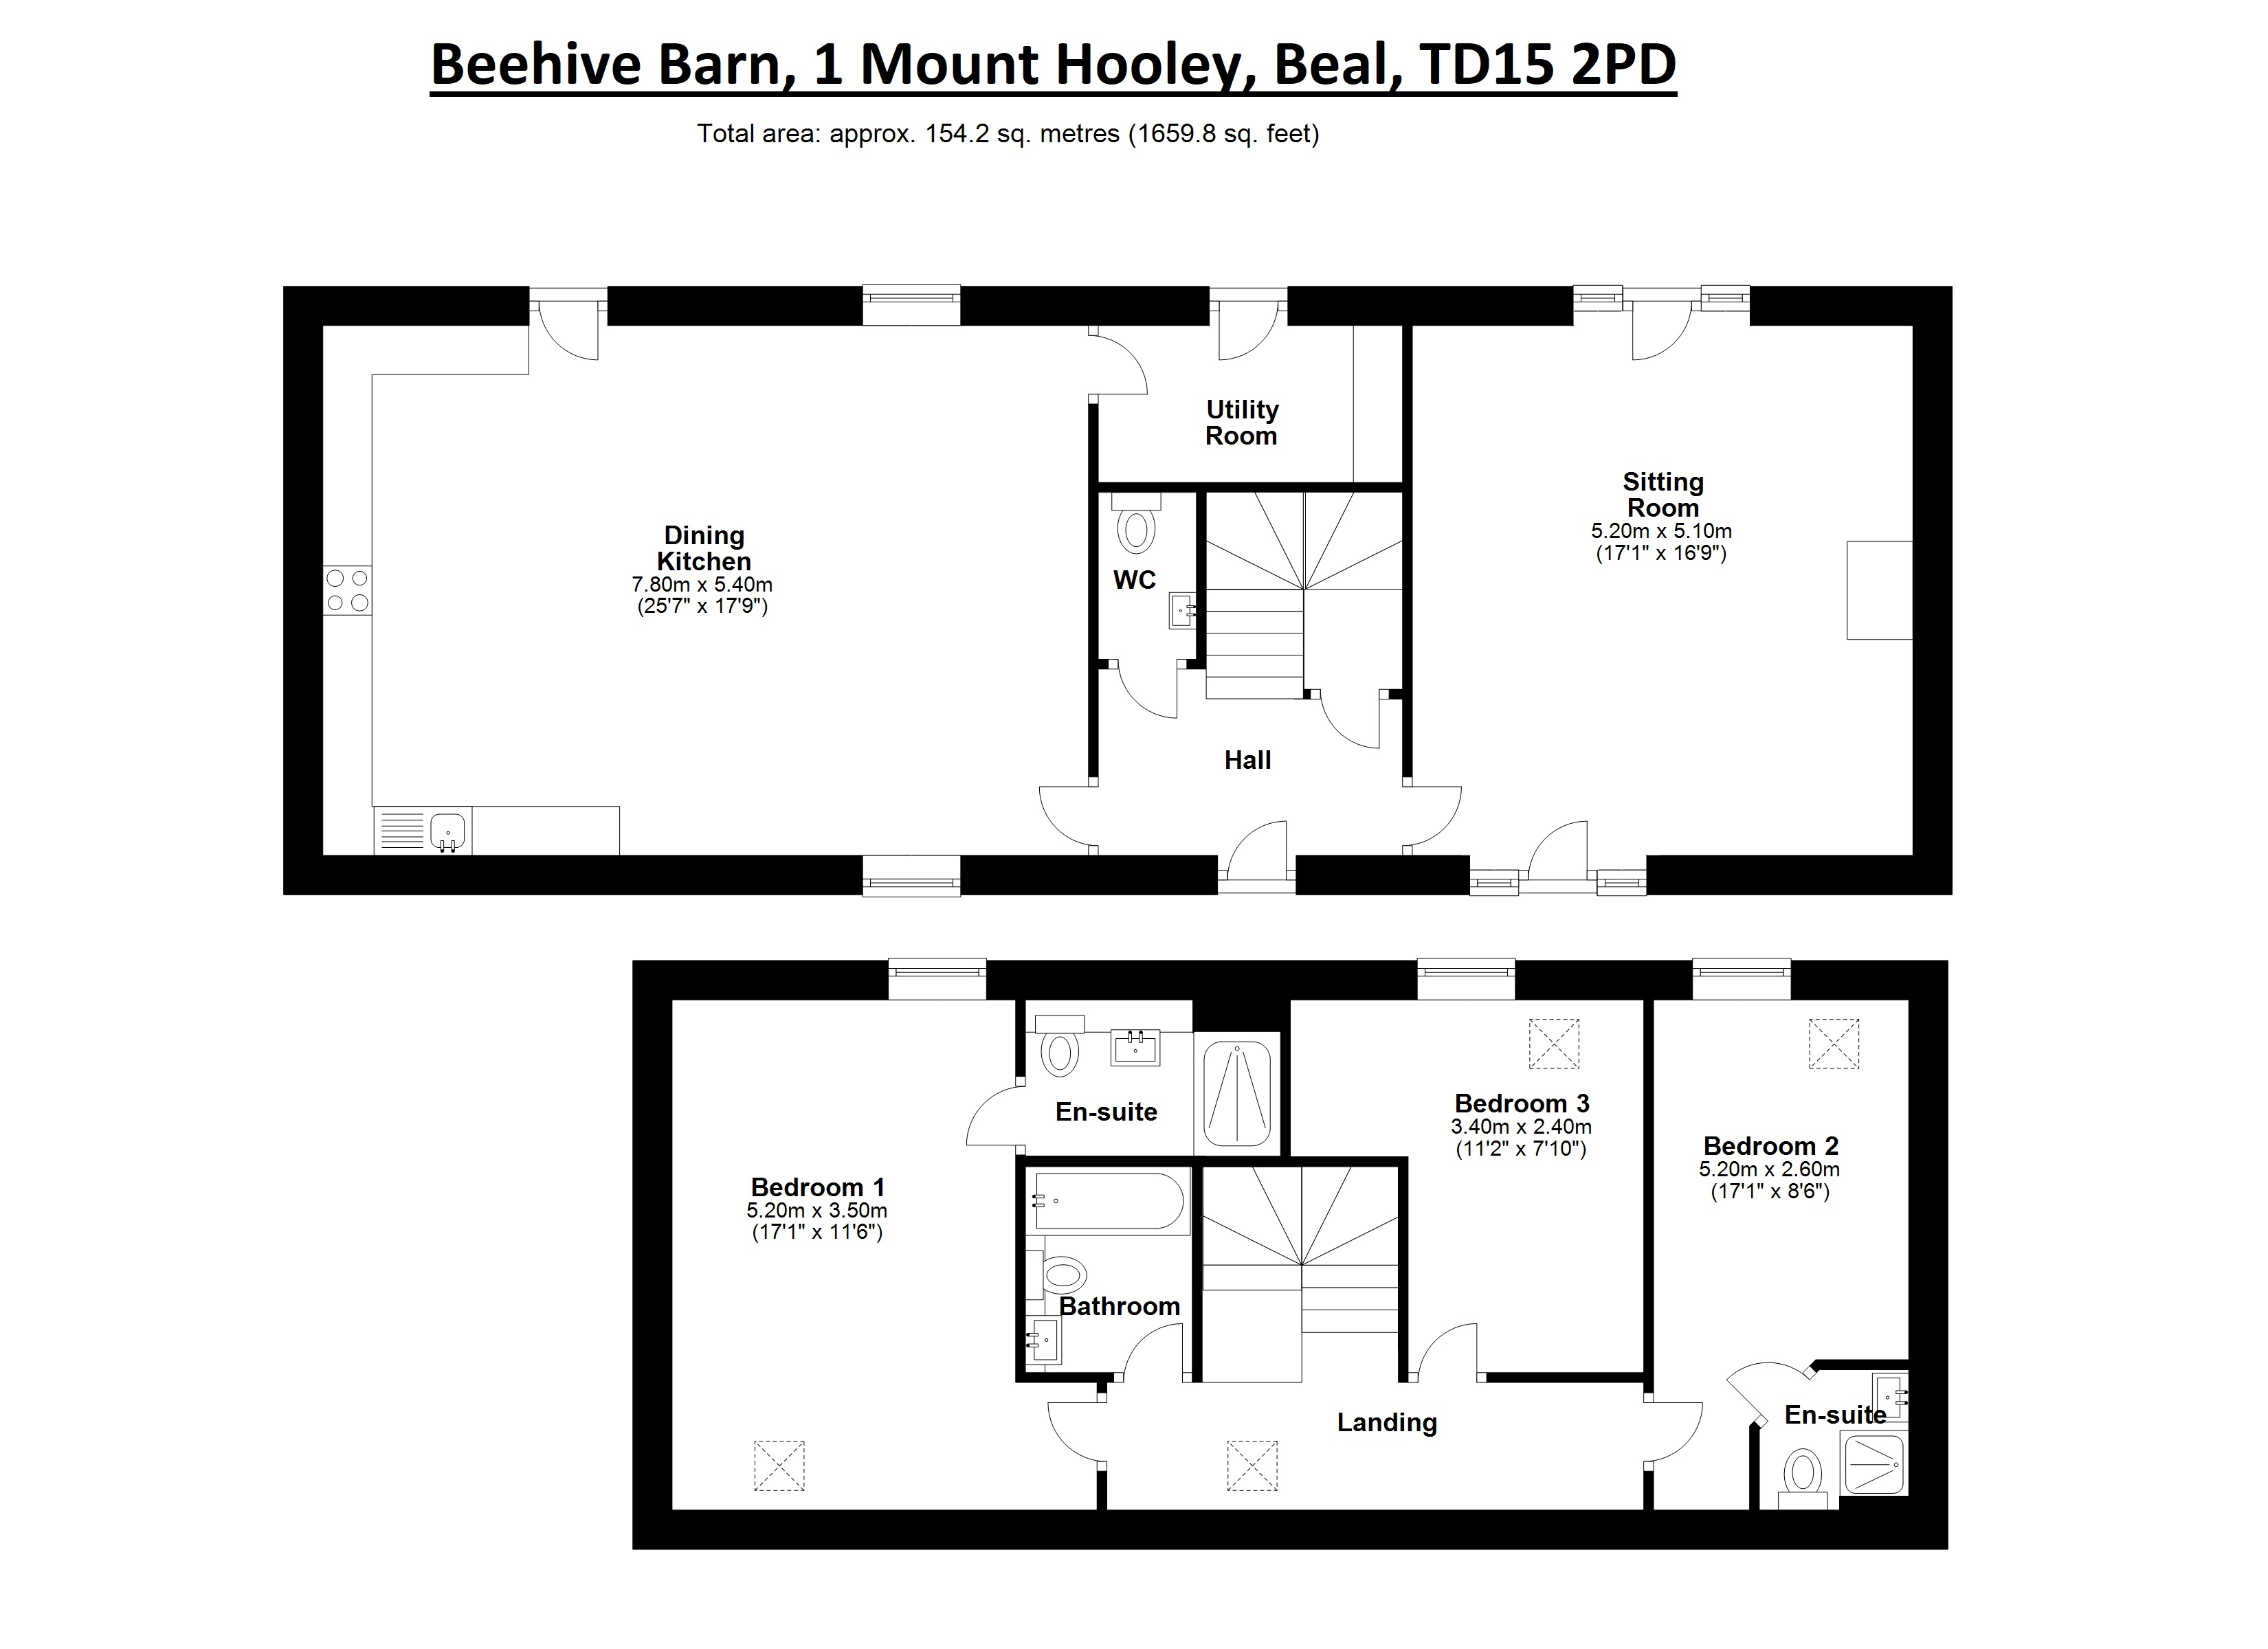 Floorplans for Beehive Barn, 1 Mount Hooley, Beal, TD15